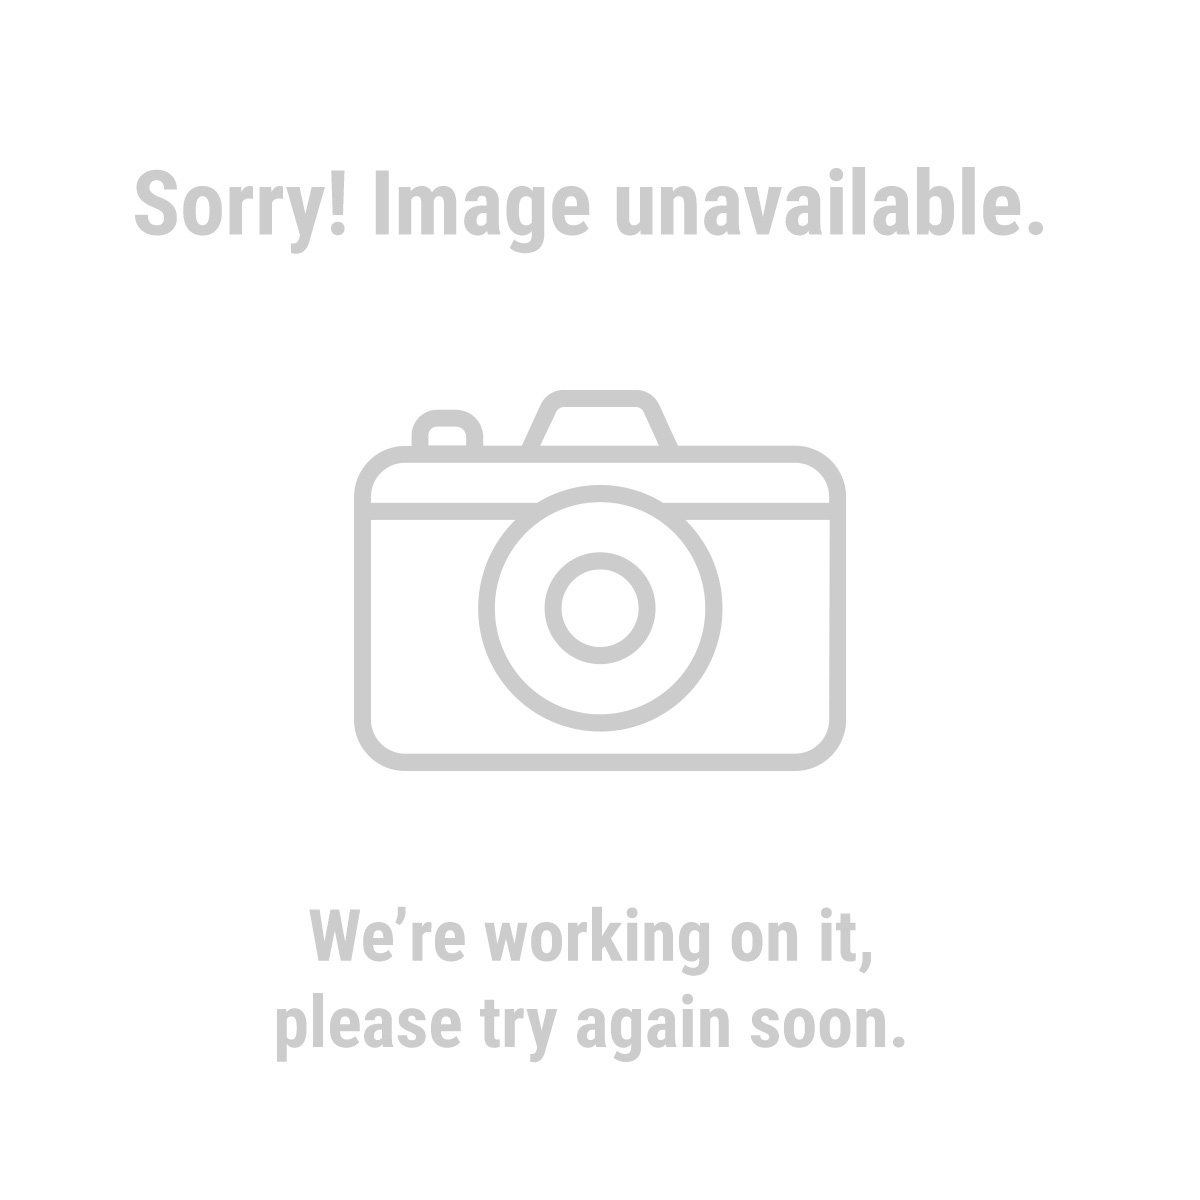 Haul-Master® 65961 ATV Hitch Adapter